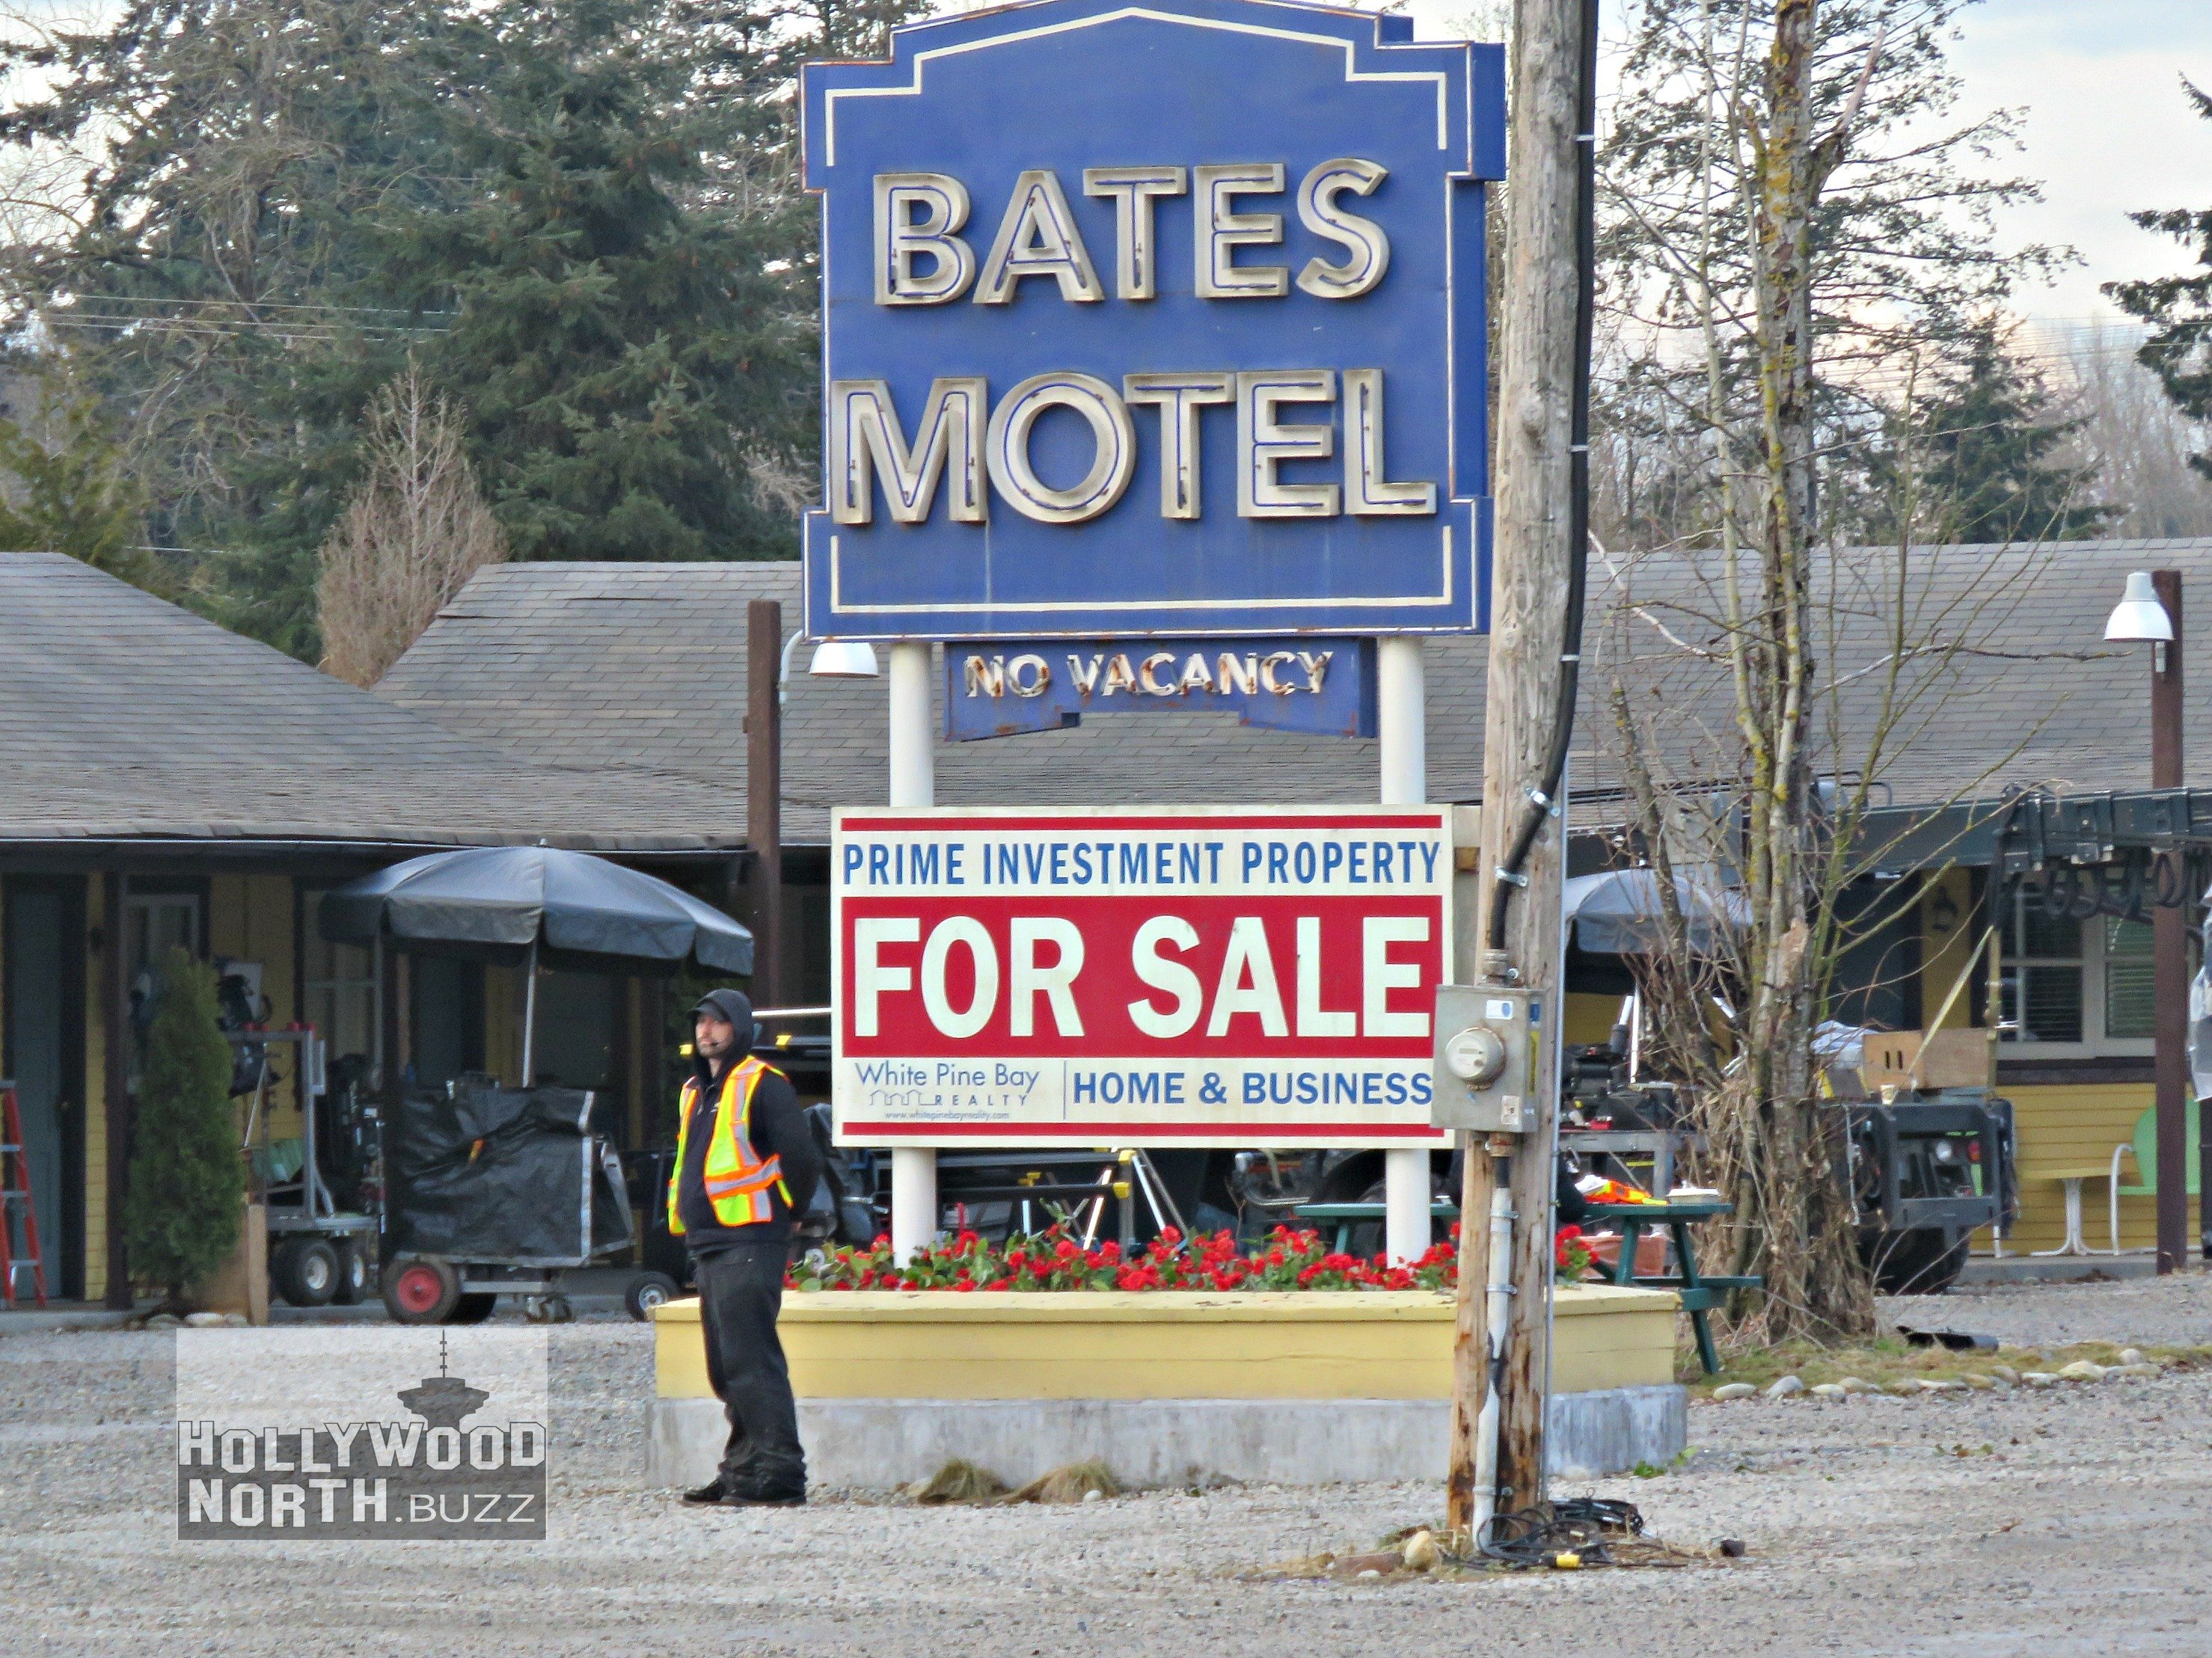 bates motel for sale-2